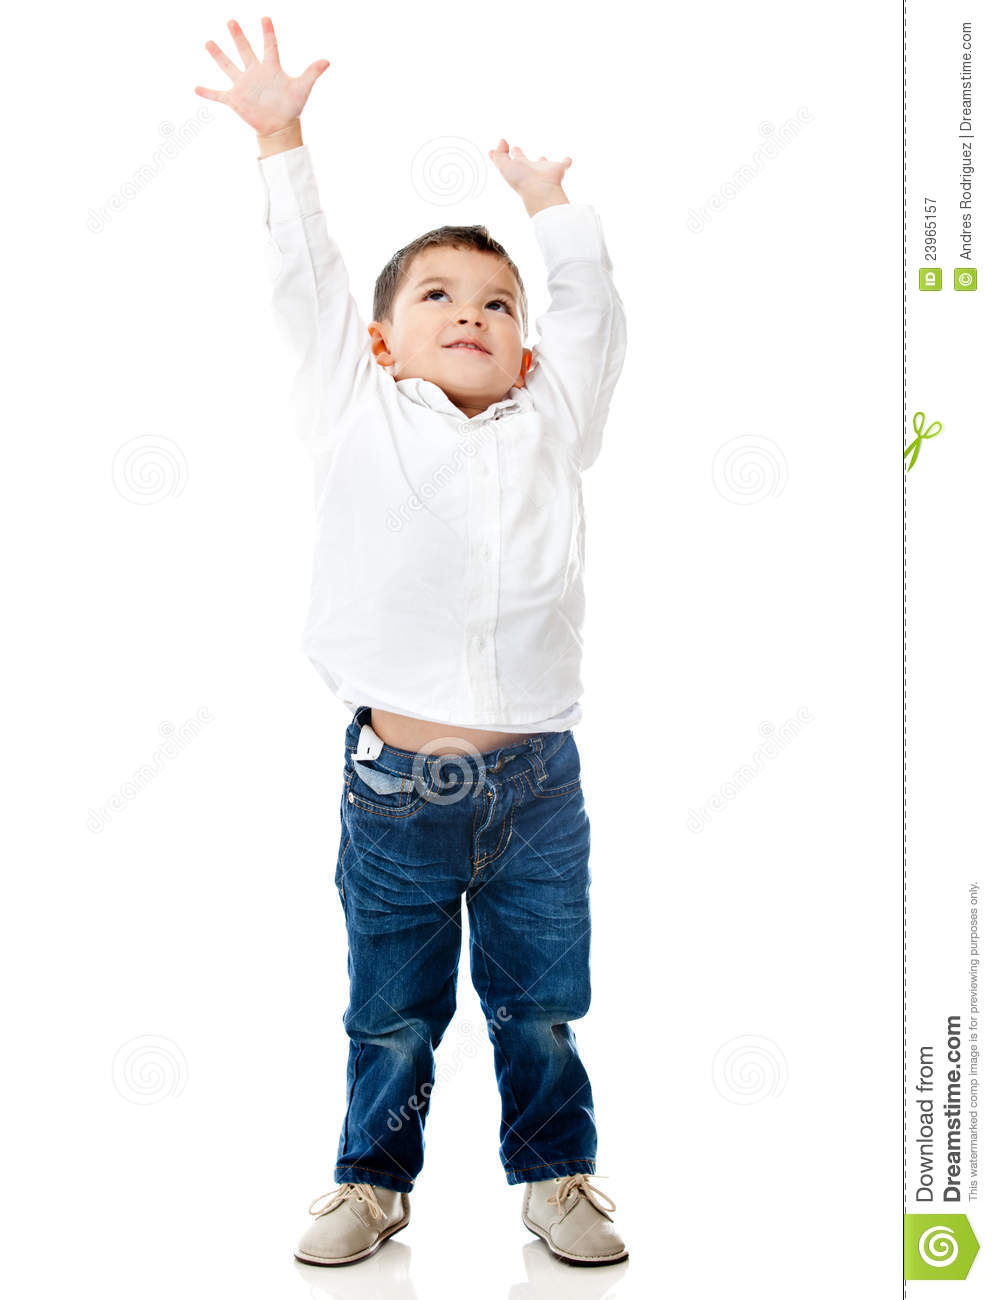 Boy Reaching Ceiling Royalty Free Stock Photography - Image: 23965157